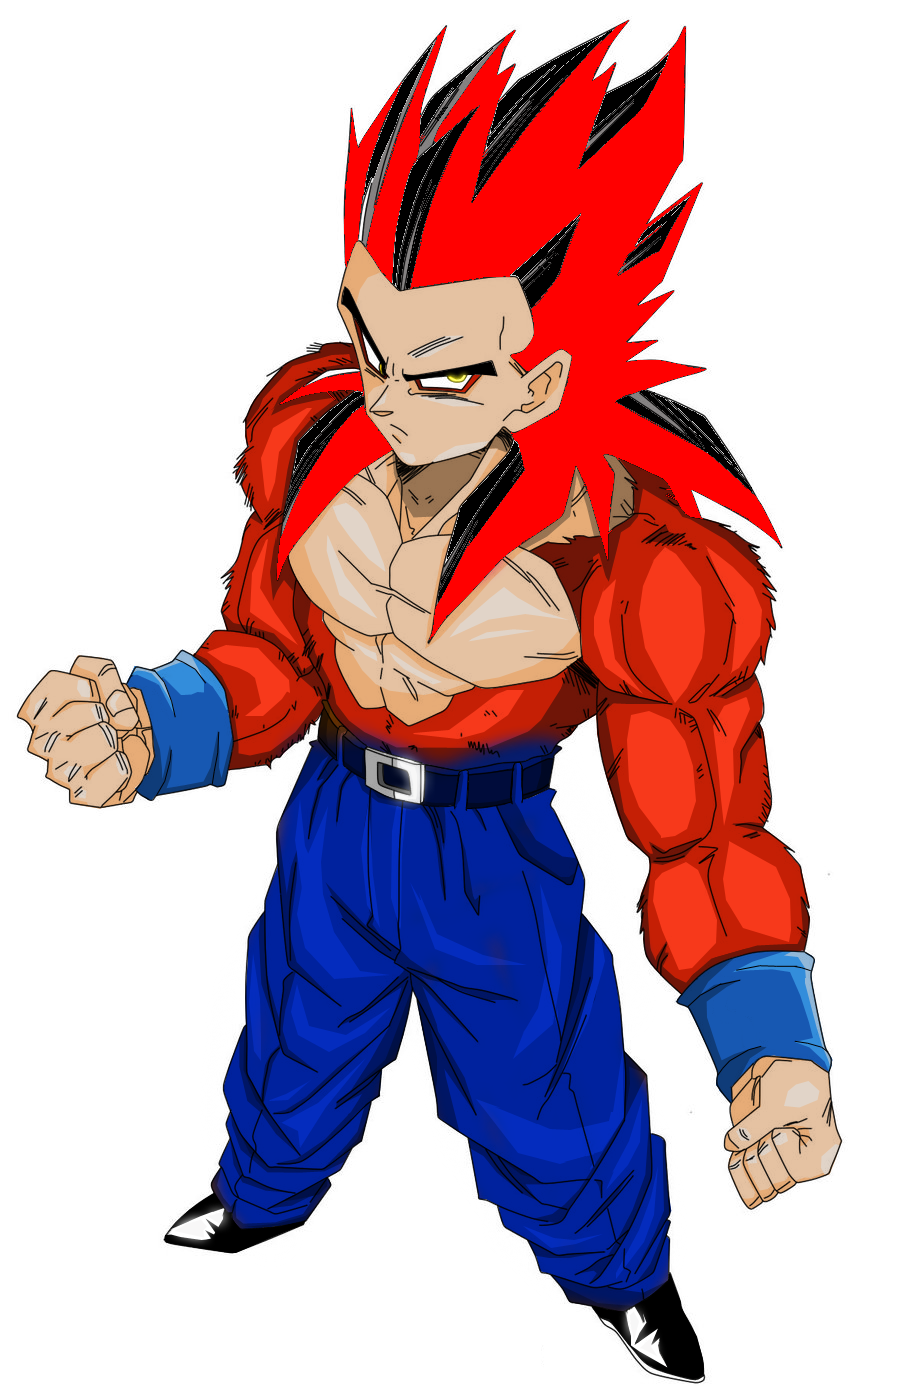 Hyper super saiyan supreme super saiyan 9 dragon ball universe wiki fandom powered by wikia - Super sayen 10 ...